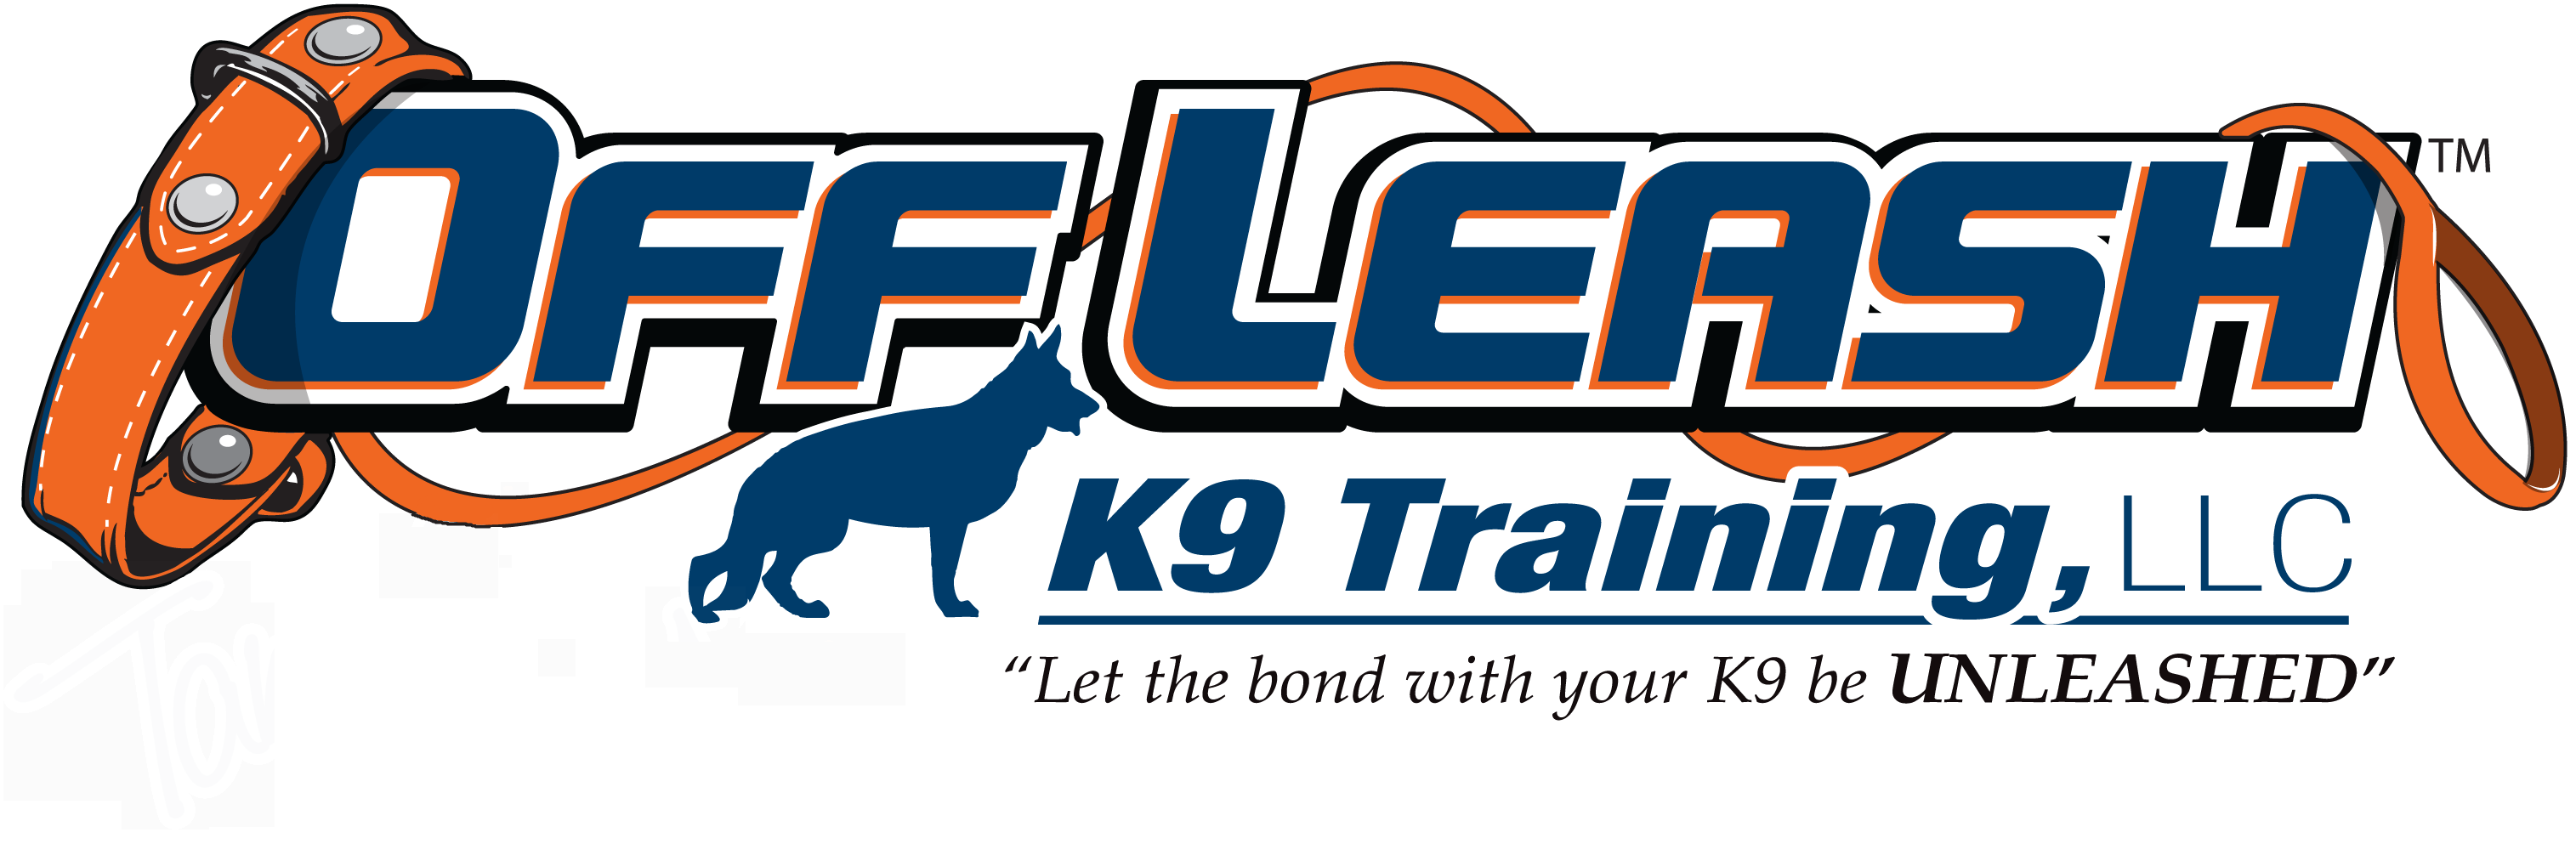 Offleash K9 Celebrity Dog Training